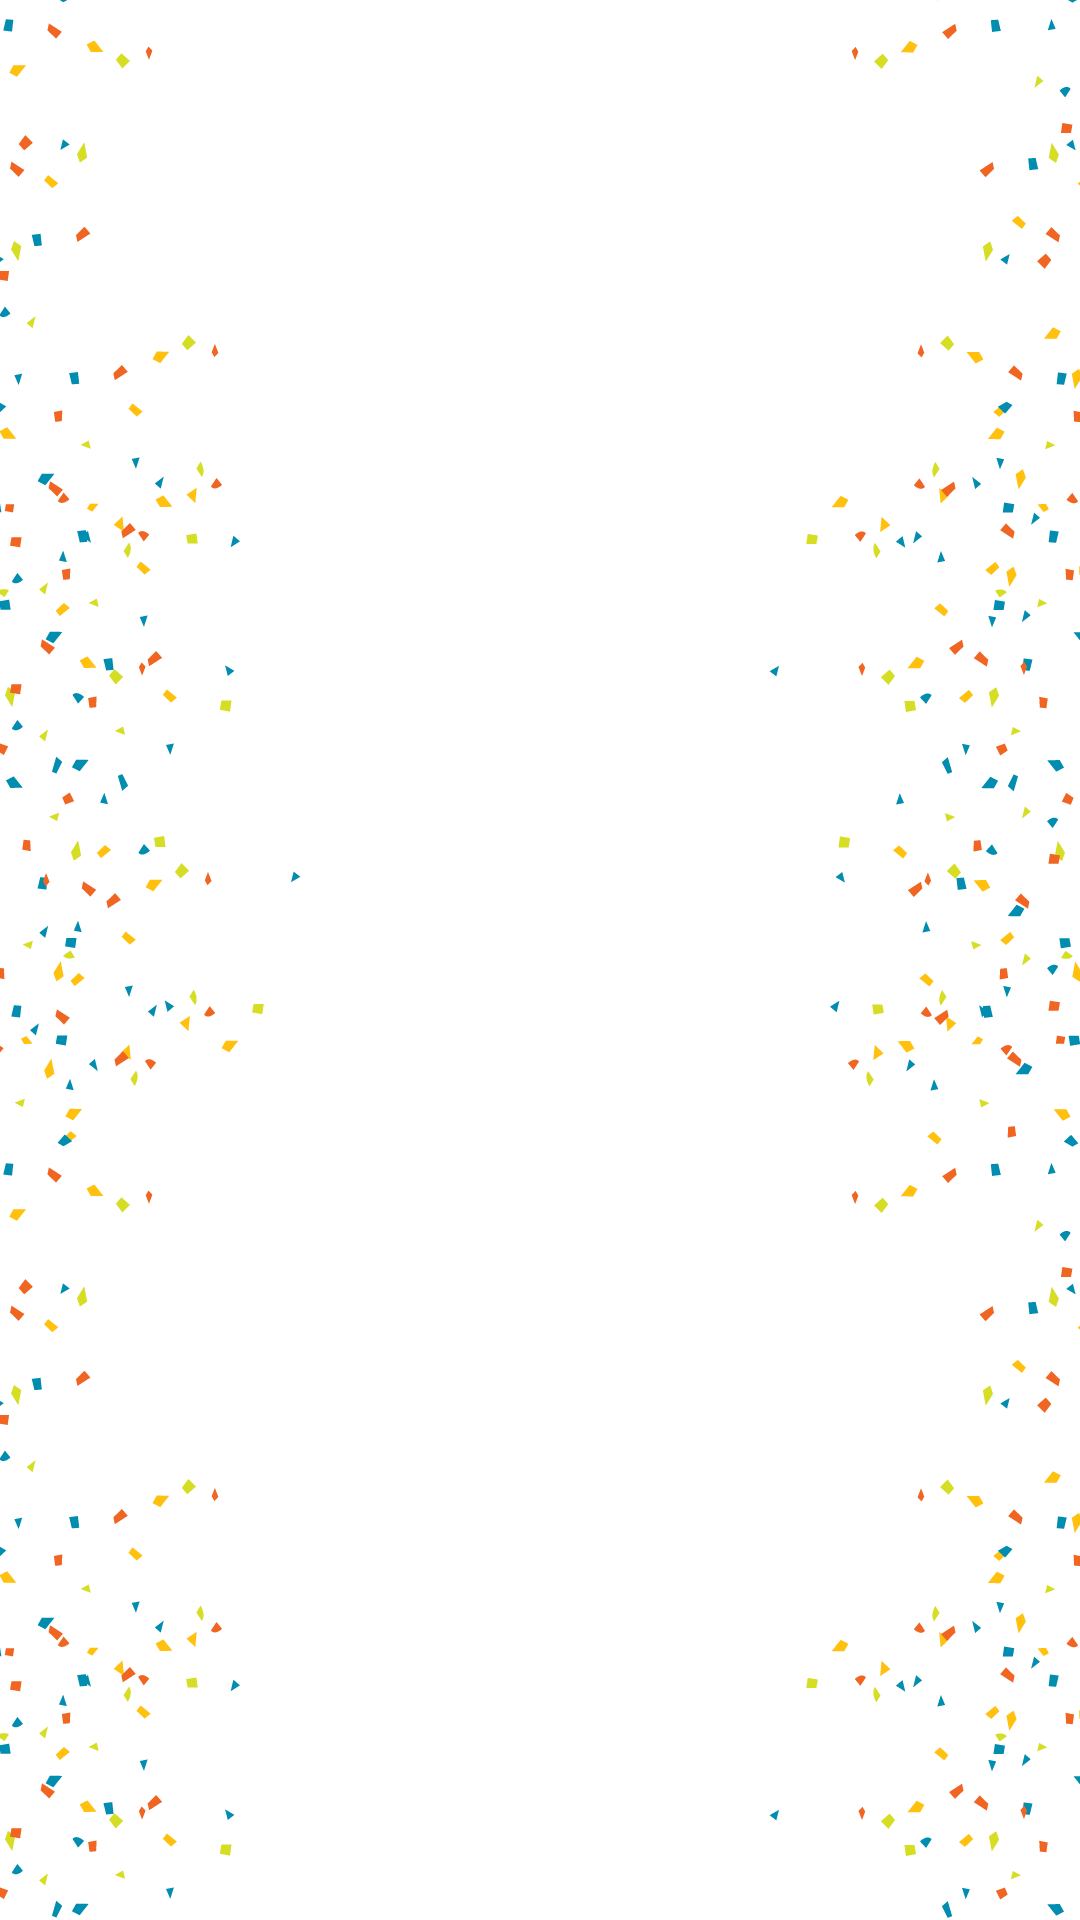 Glitter confetti png. Simple birthday snapchat filter